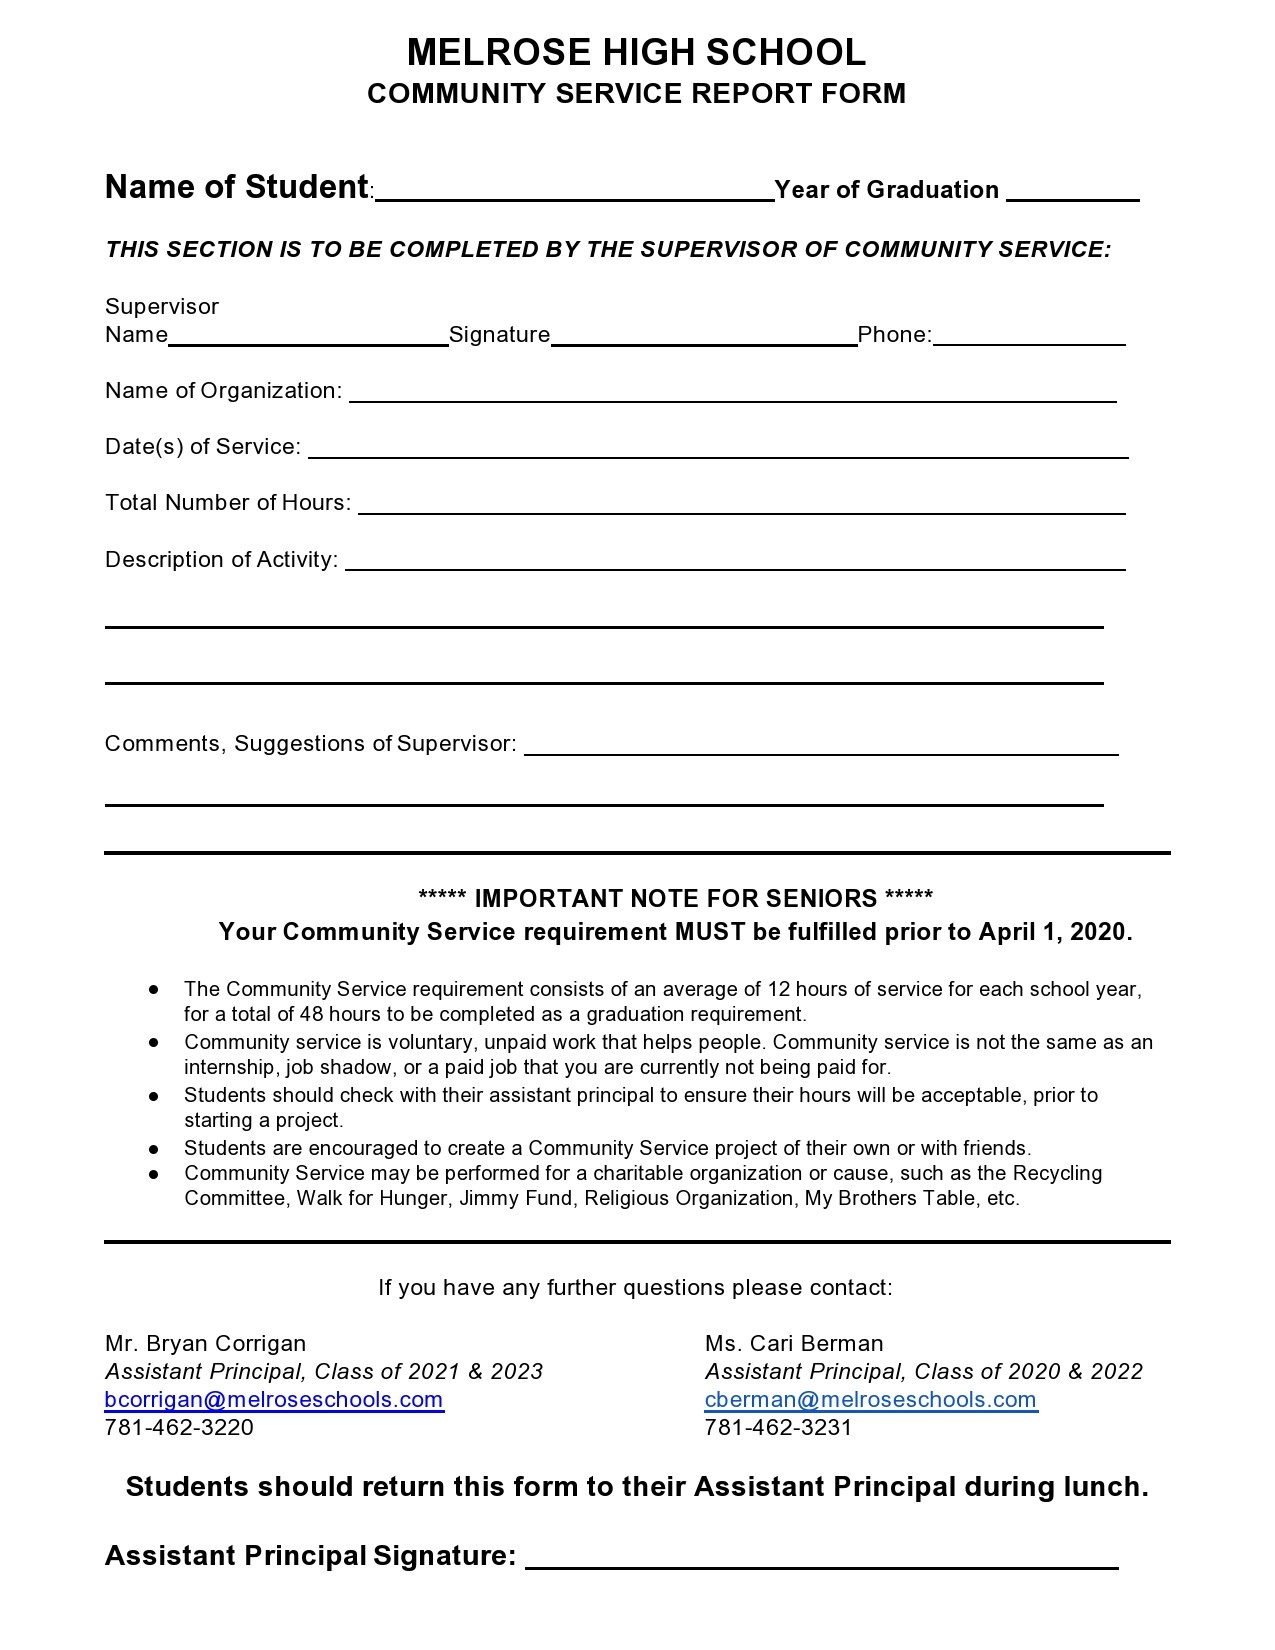 Free community service form 16